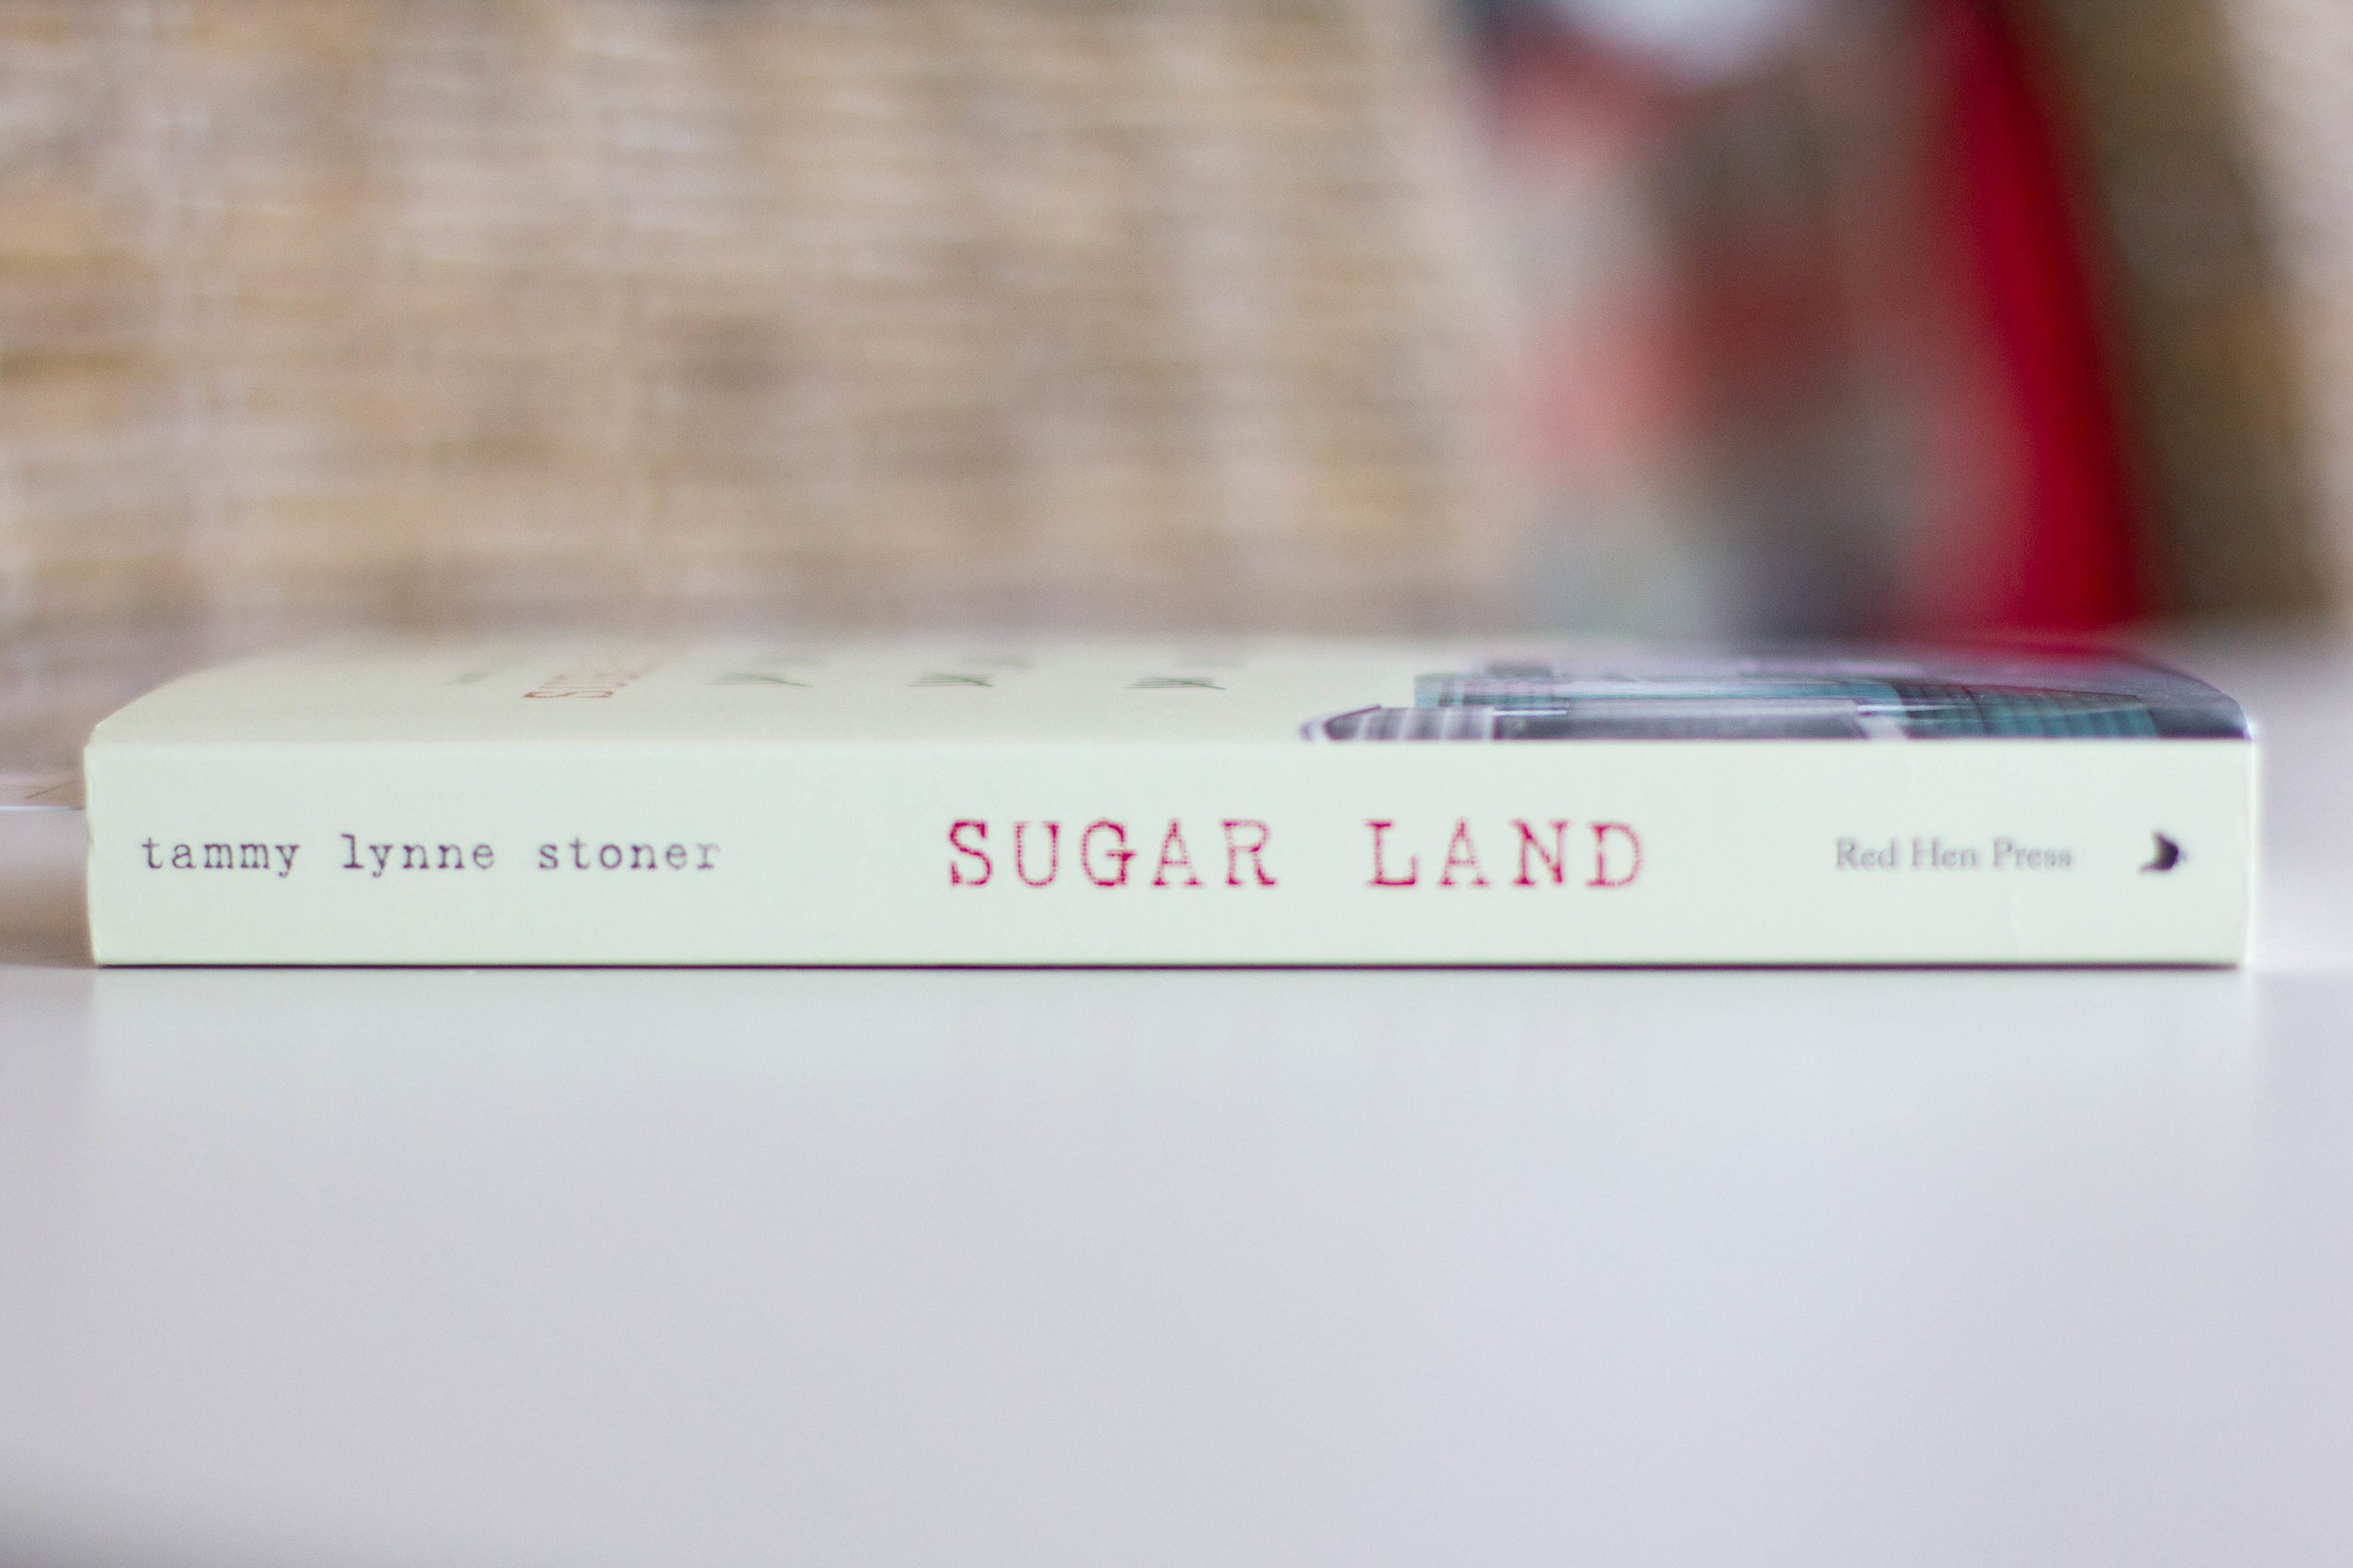 Book Feature - Sugar Land by tammy lynne stoner